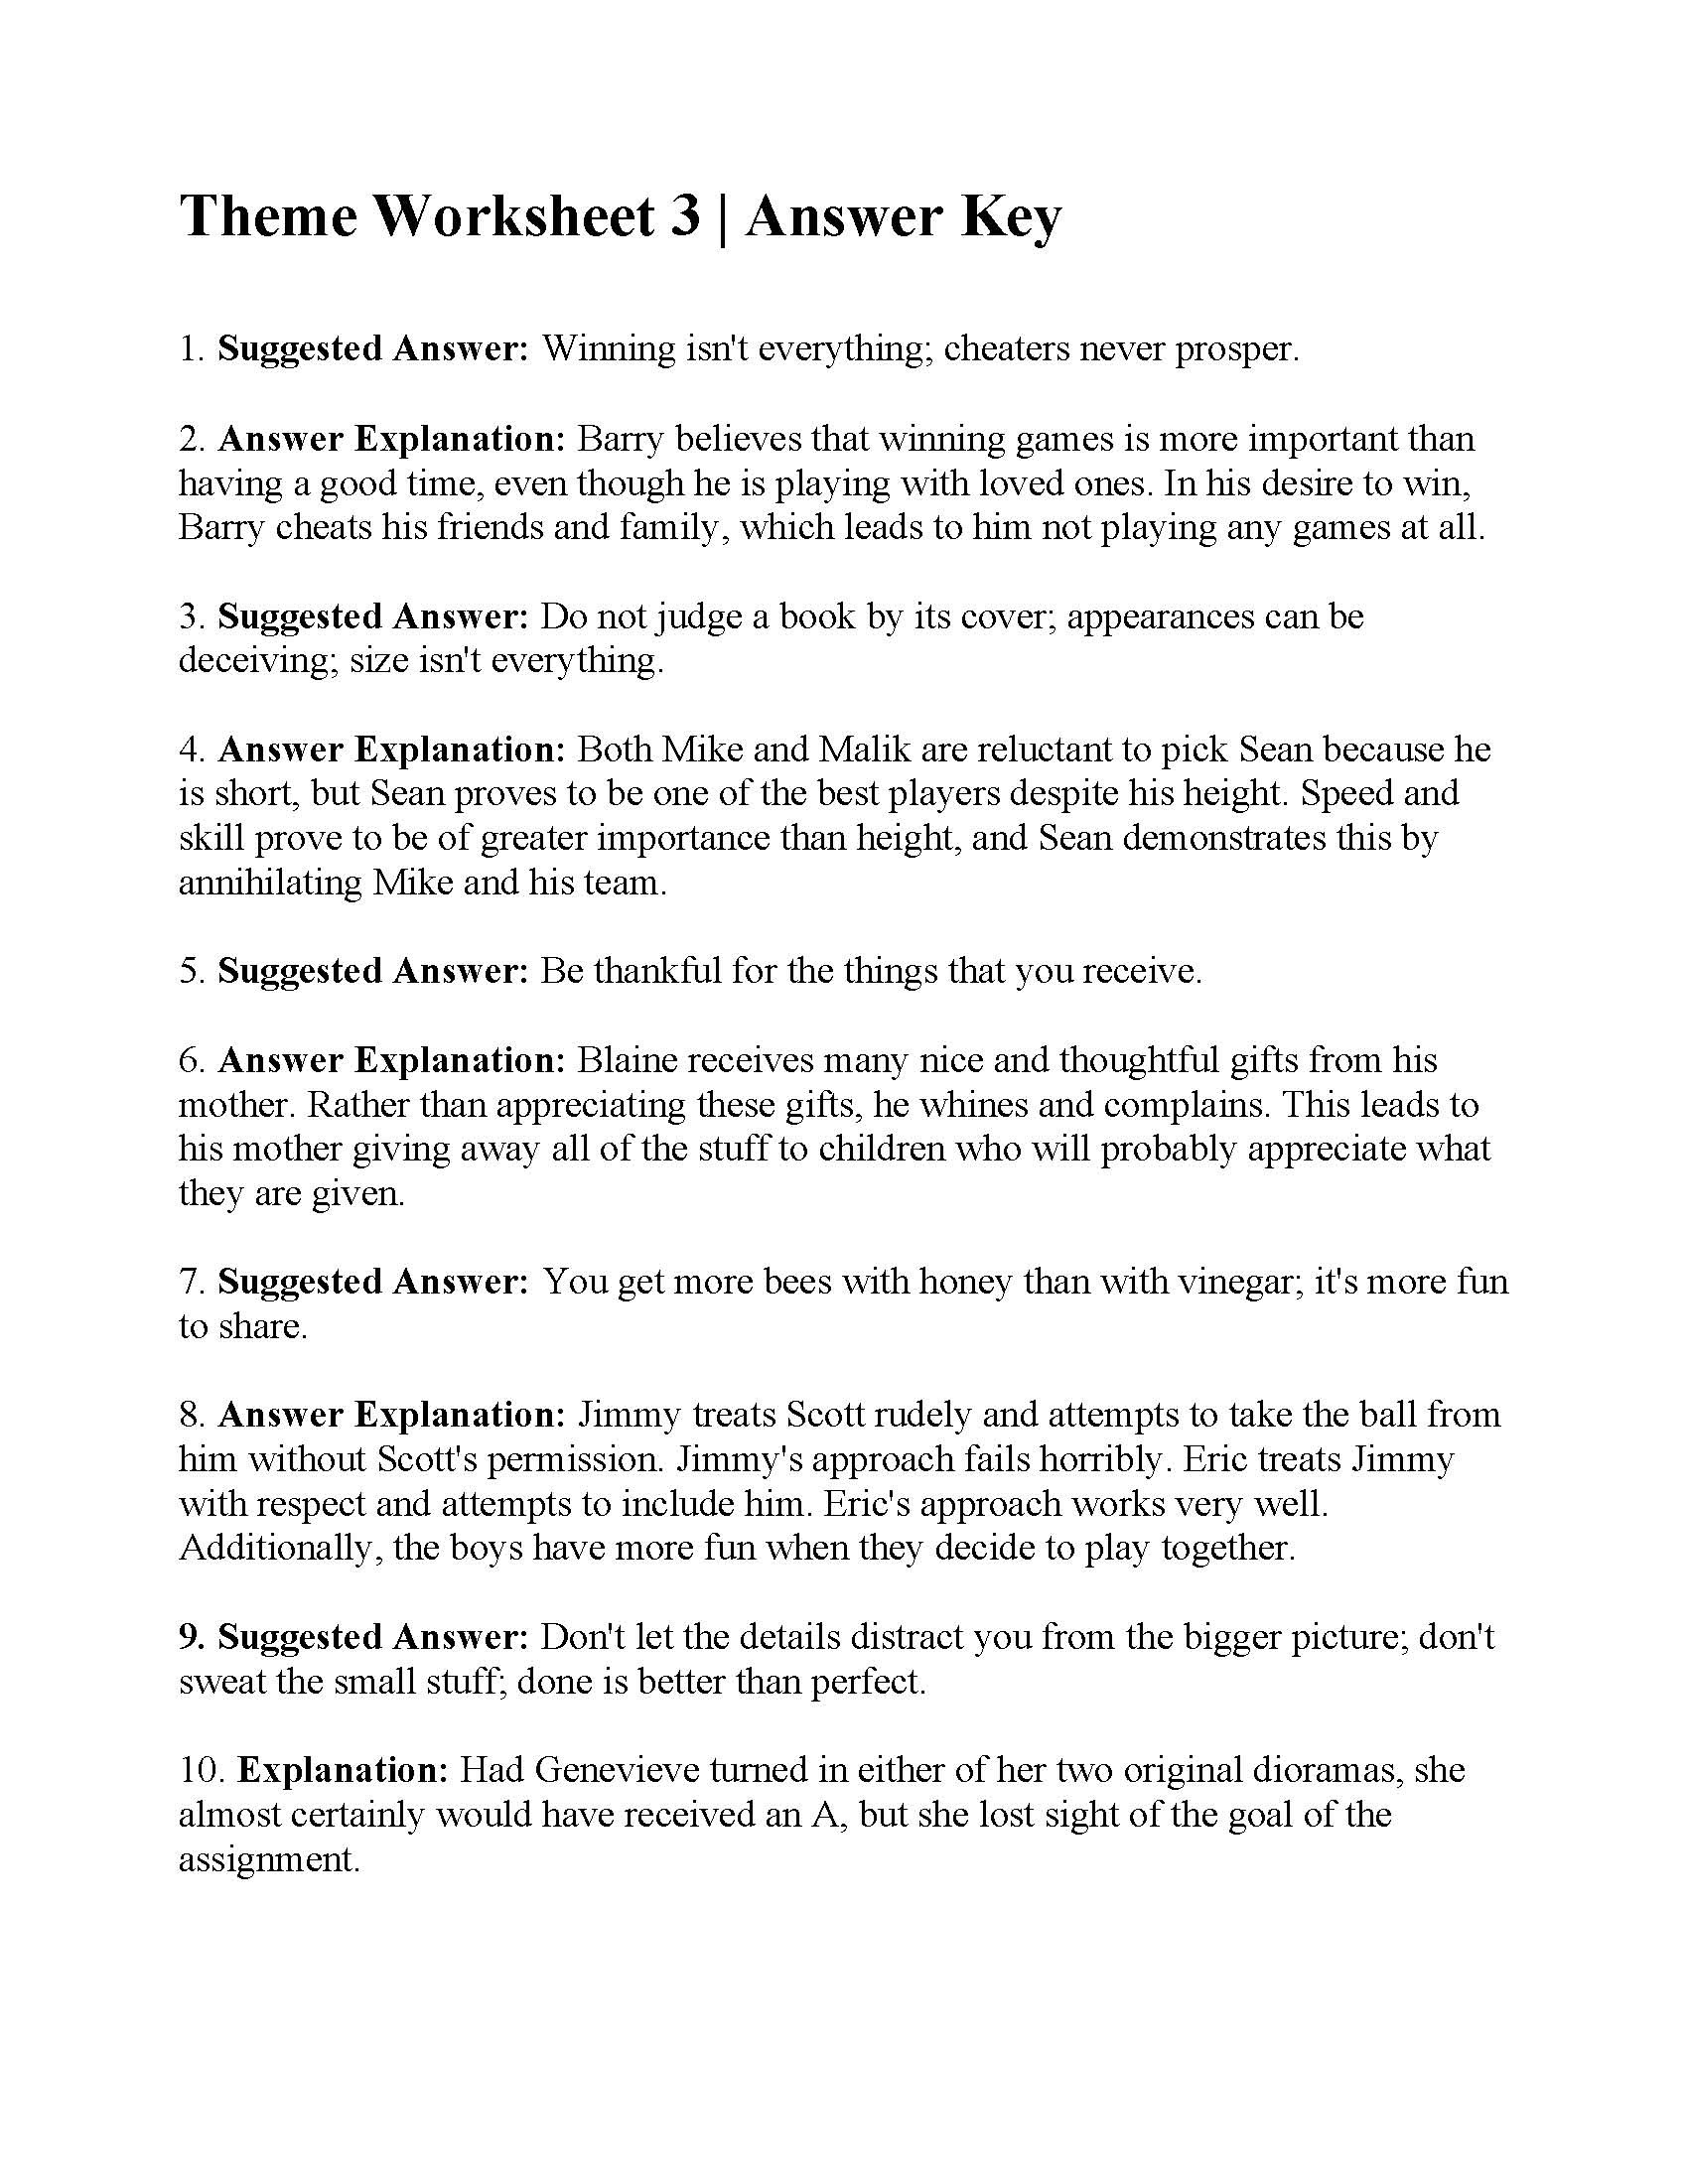 Theme Worksheets 5th Grade theme Worksheet Answers Ereading Worksheets Math Magnets